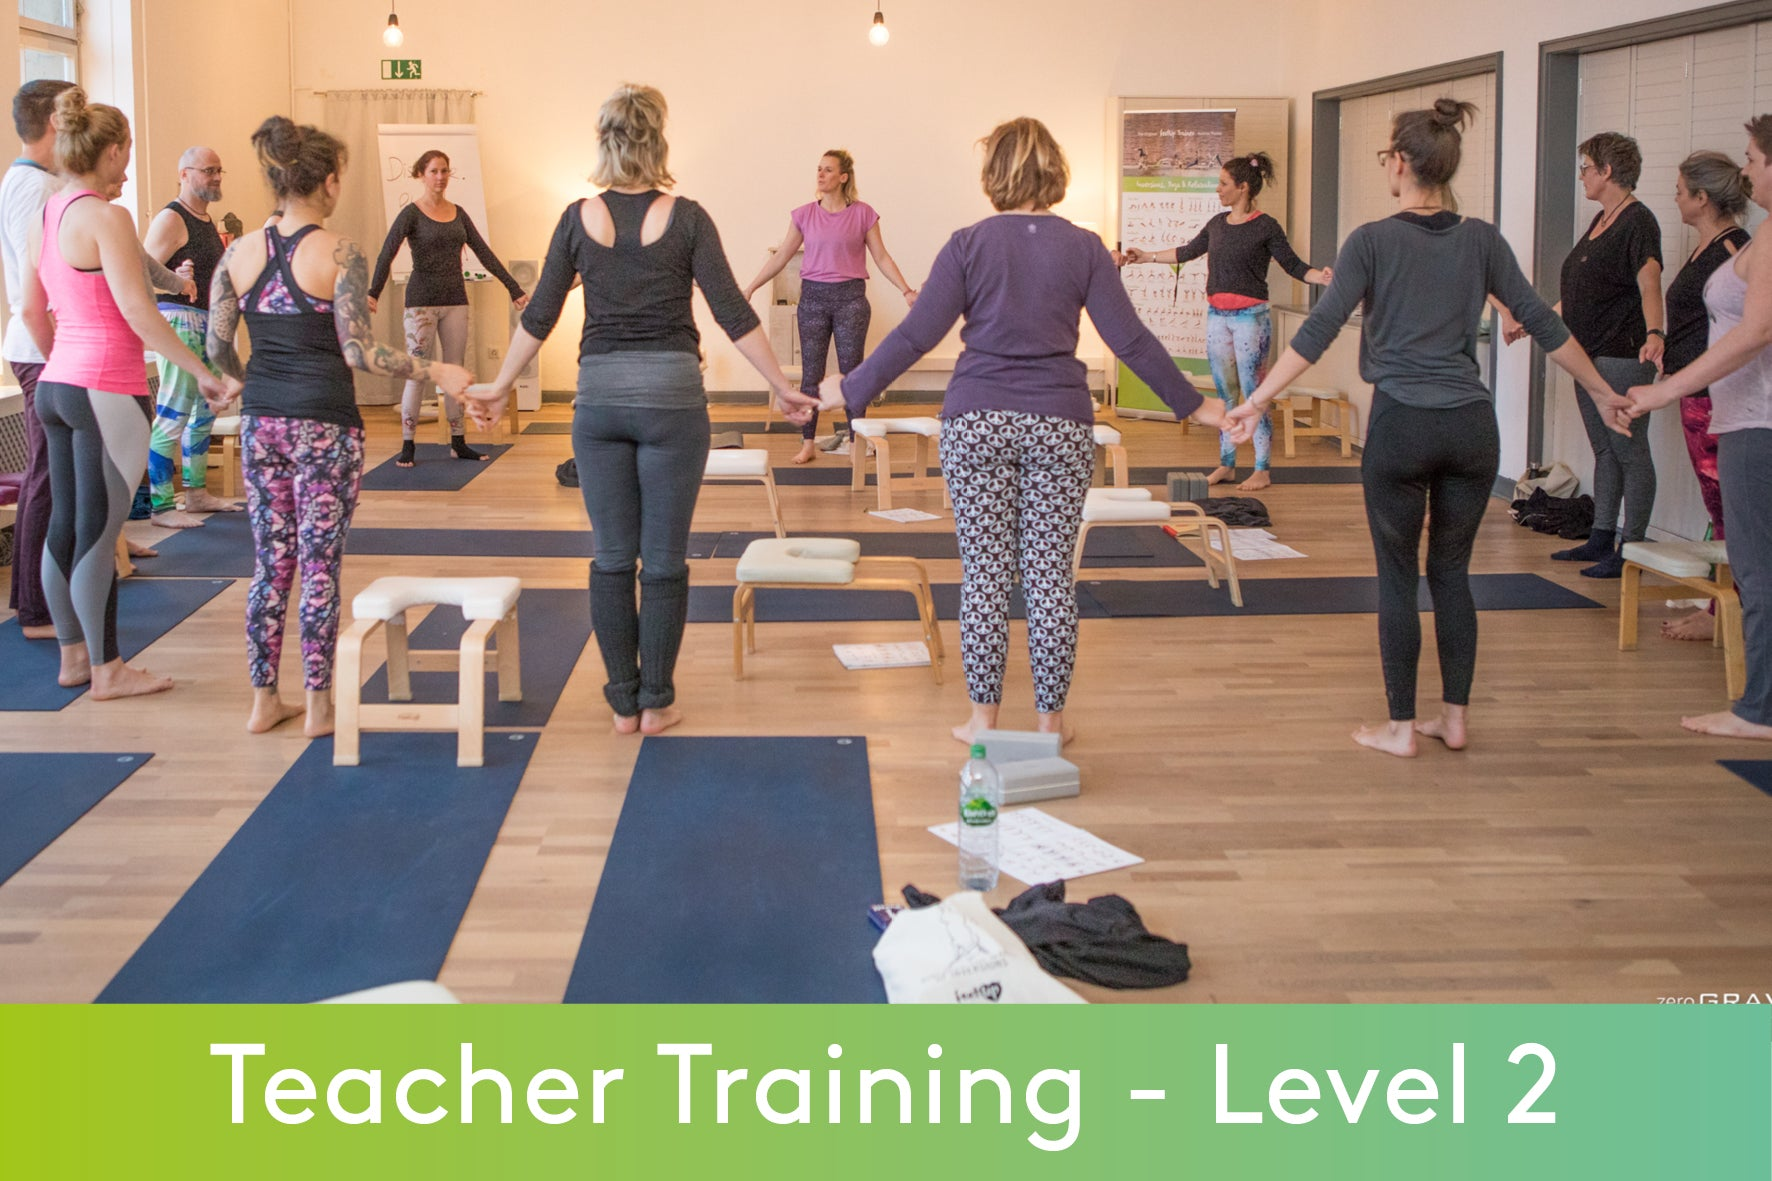 FeetUp® Teacher Training Level 2 - Bad Meinberg 22nd -24th of October 2021 (without Accommodation)